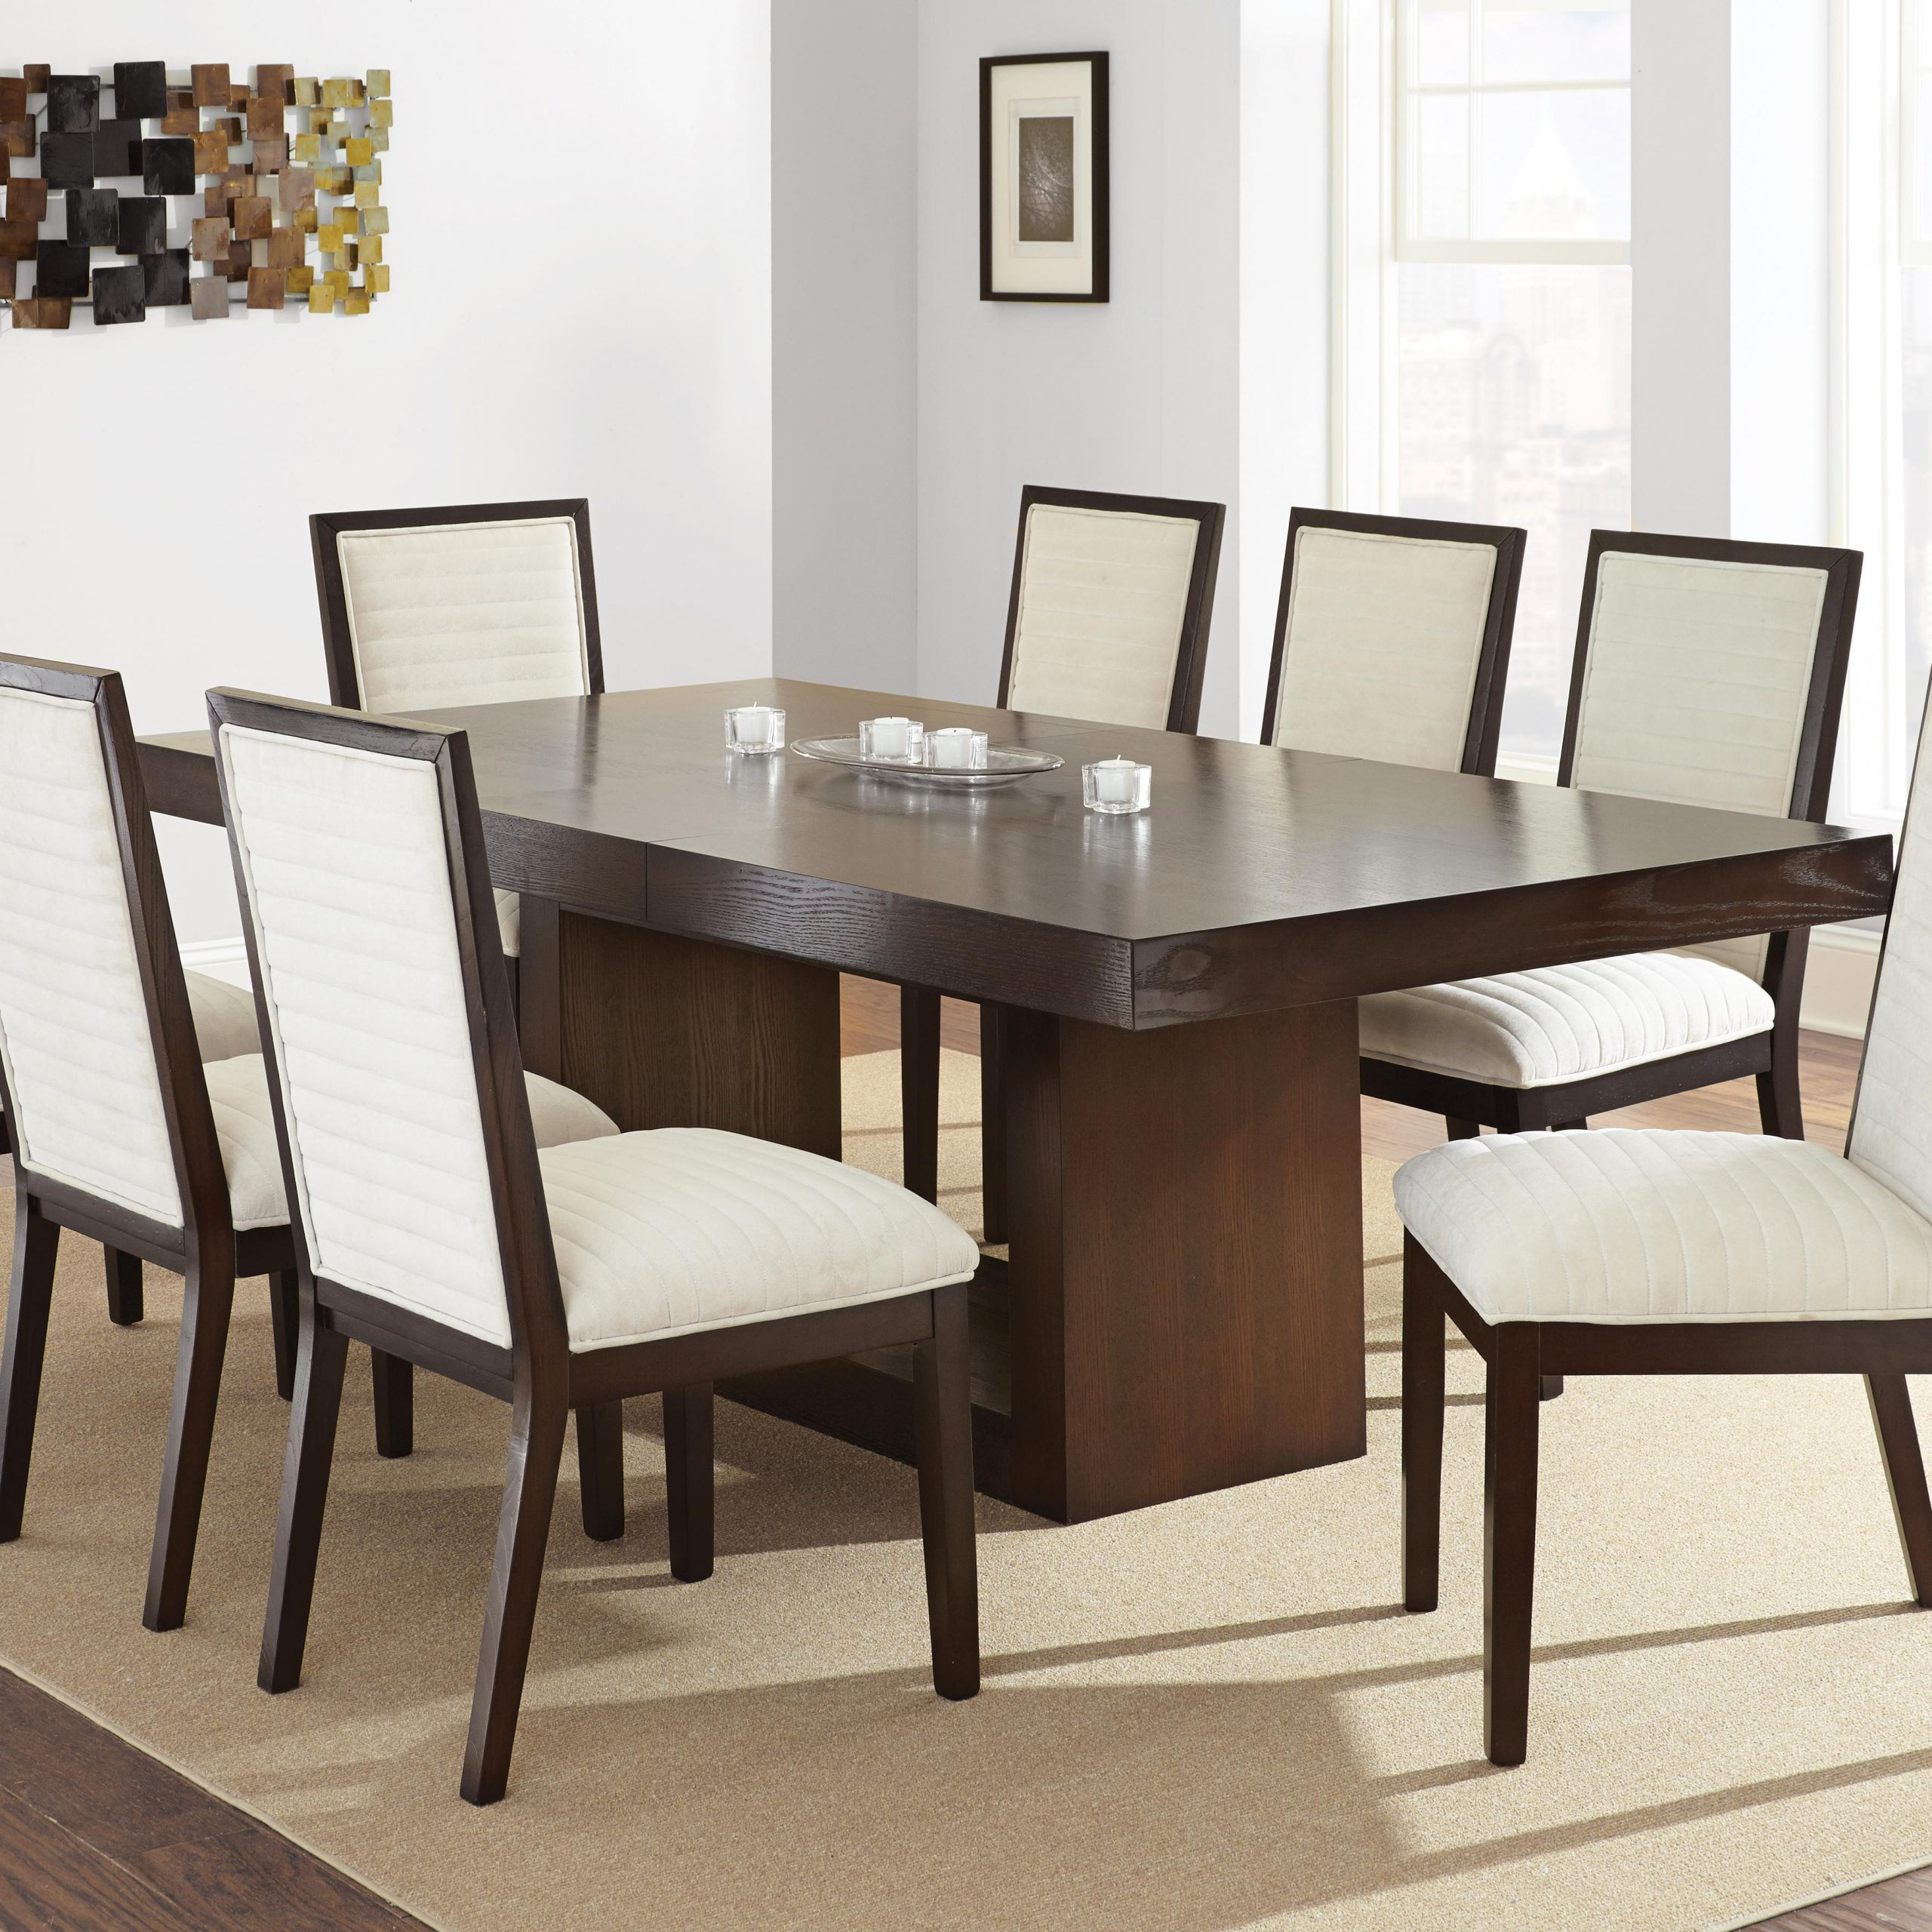 Dining Room Table Sets Columbus Ohio • Faucet Ideas Site